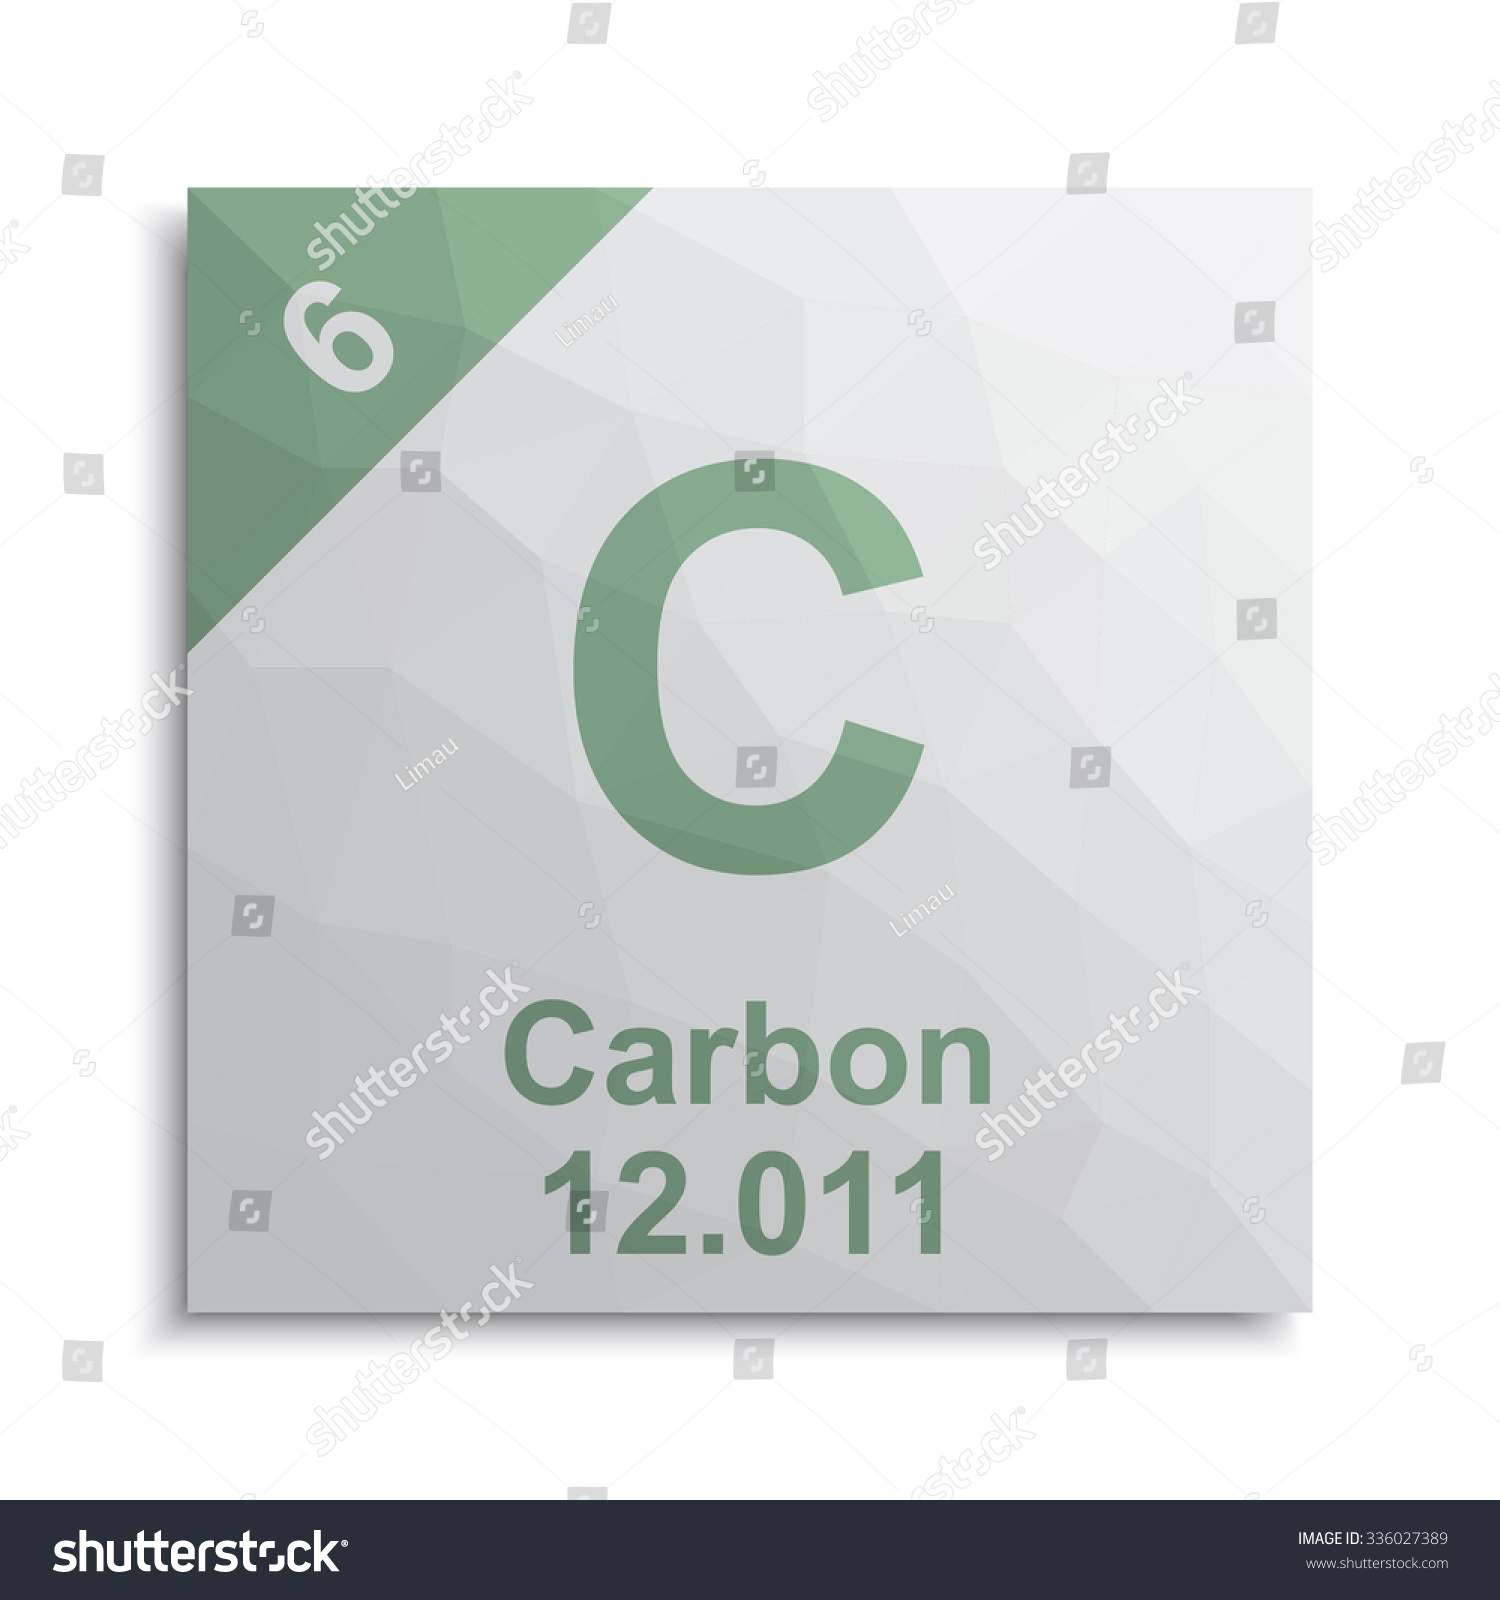 Carbon element periodic table stock vector 336027389 shutterstock carbon element periodic table gamestrikefo Image collections